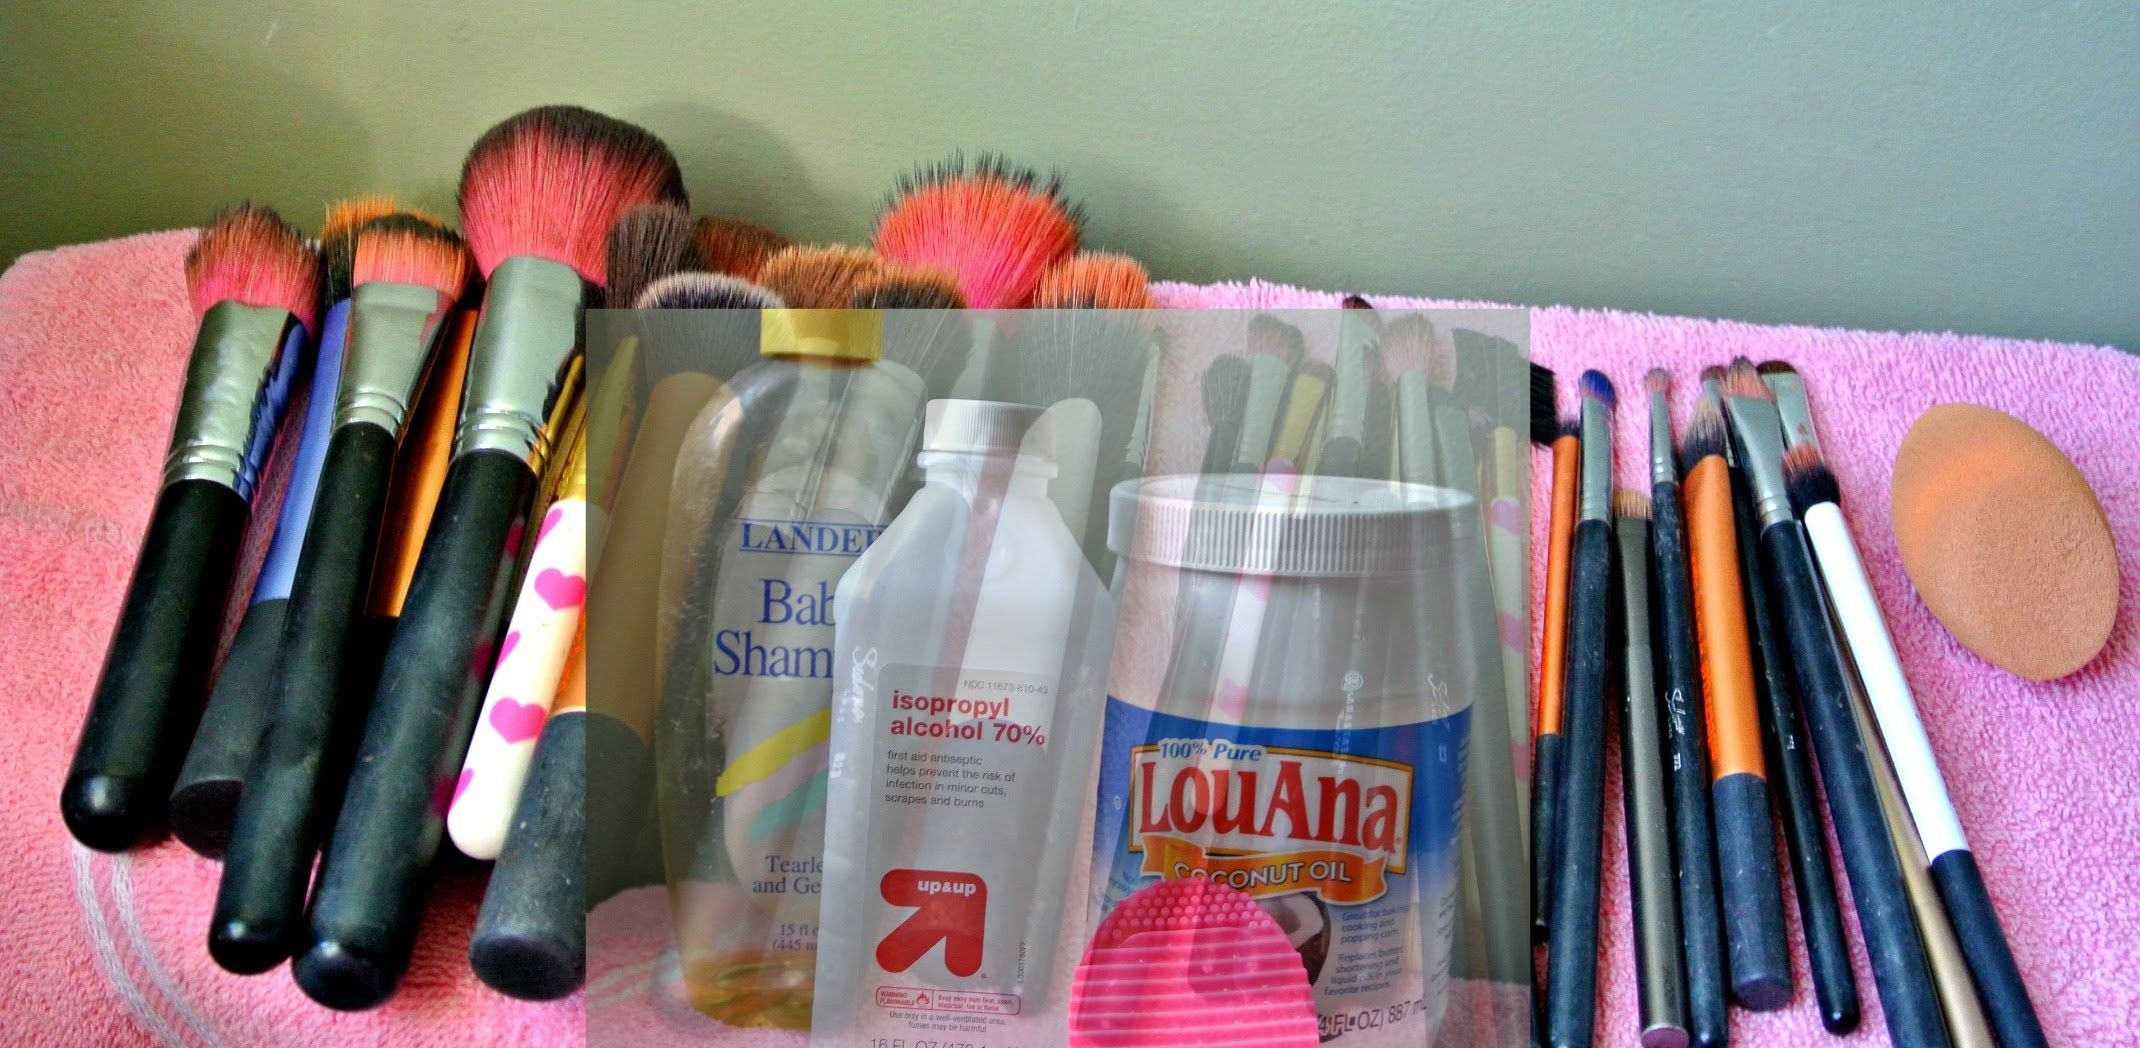 How To: Clean, Disinfect & Condition Makeup Brushes & Beauty Blender - YouTube